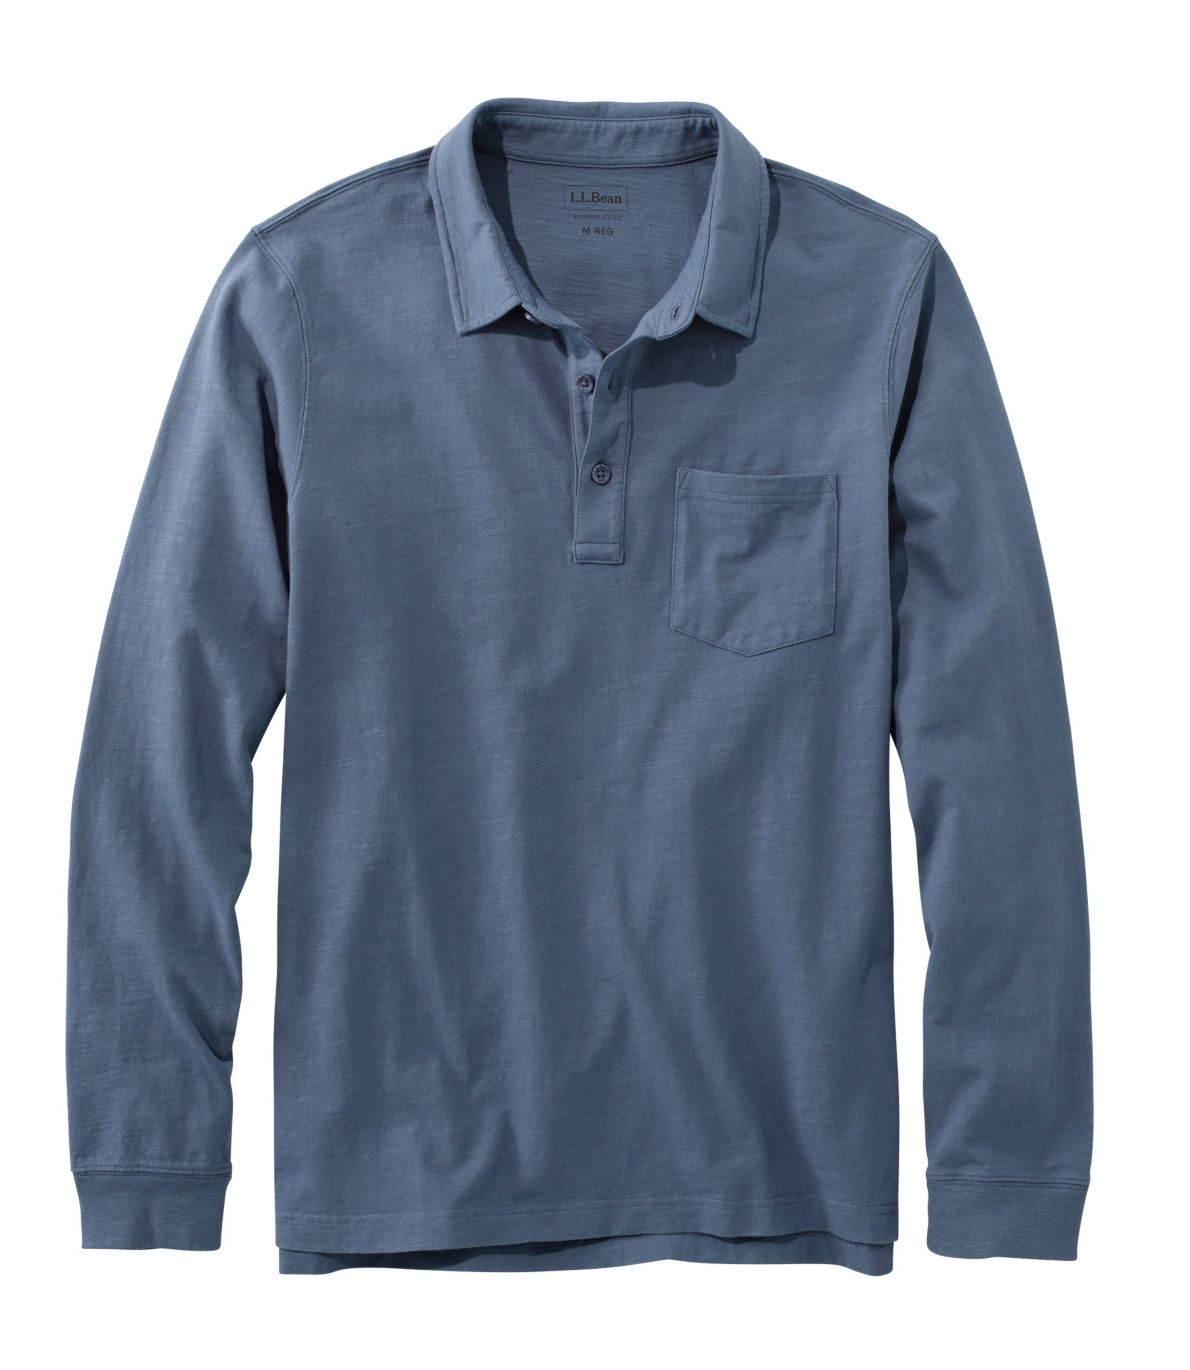 Men's Lakewashed® Organic Cotton Polo with Pocket, Long-Sleeve